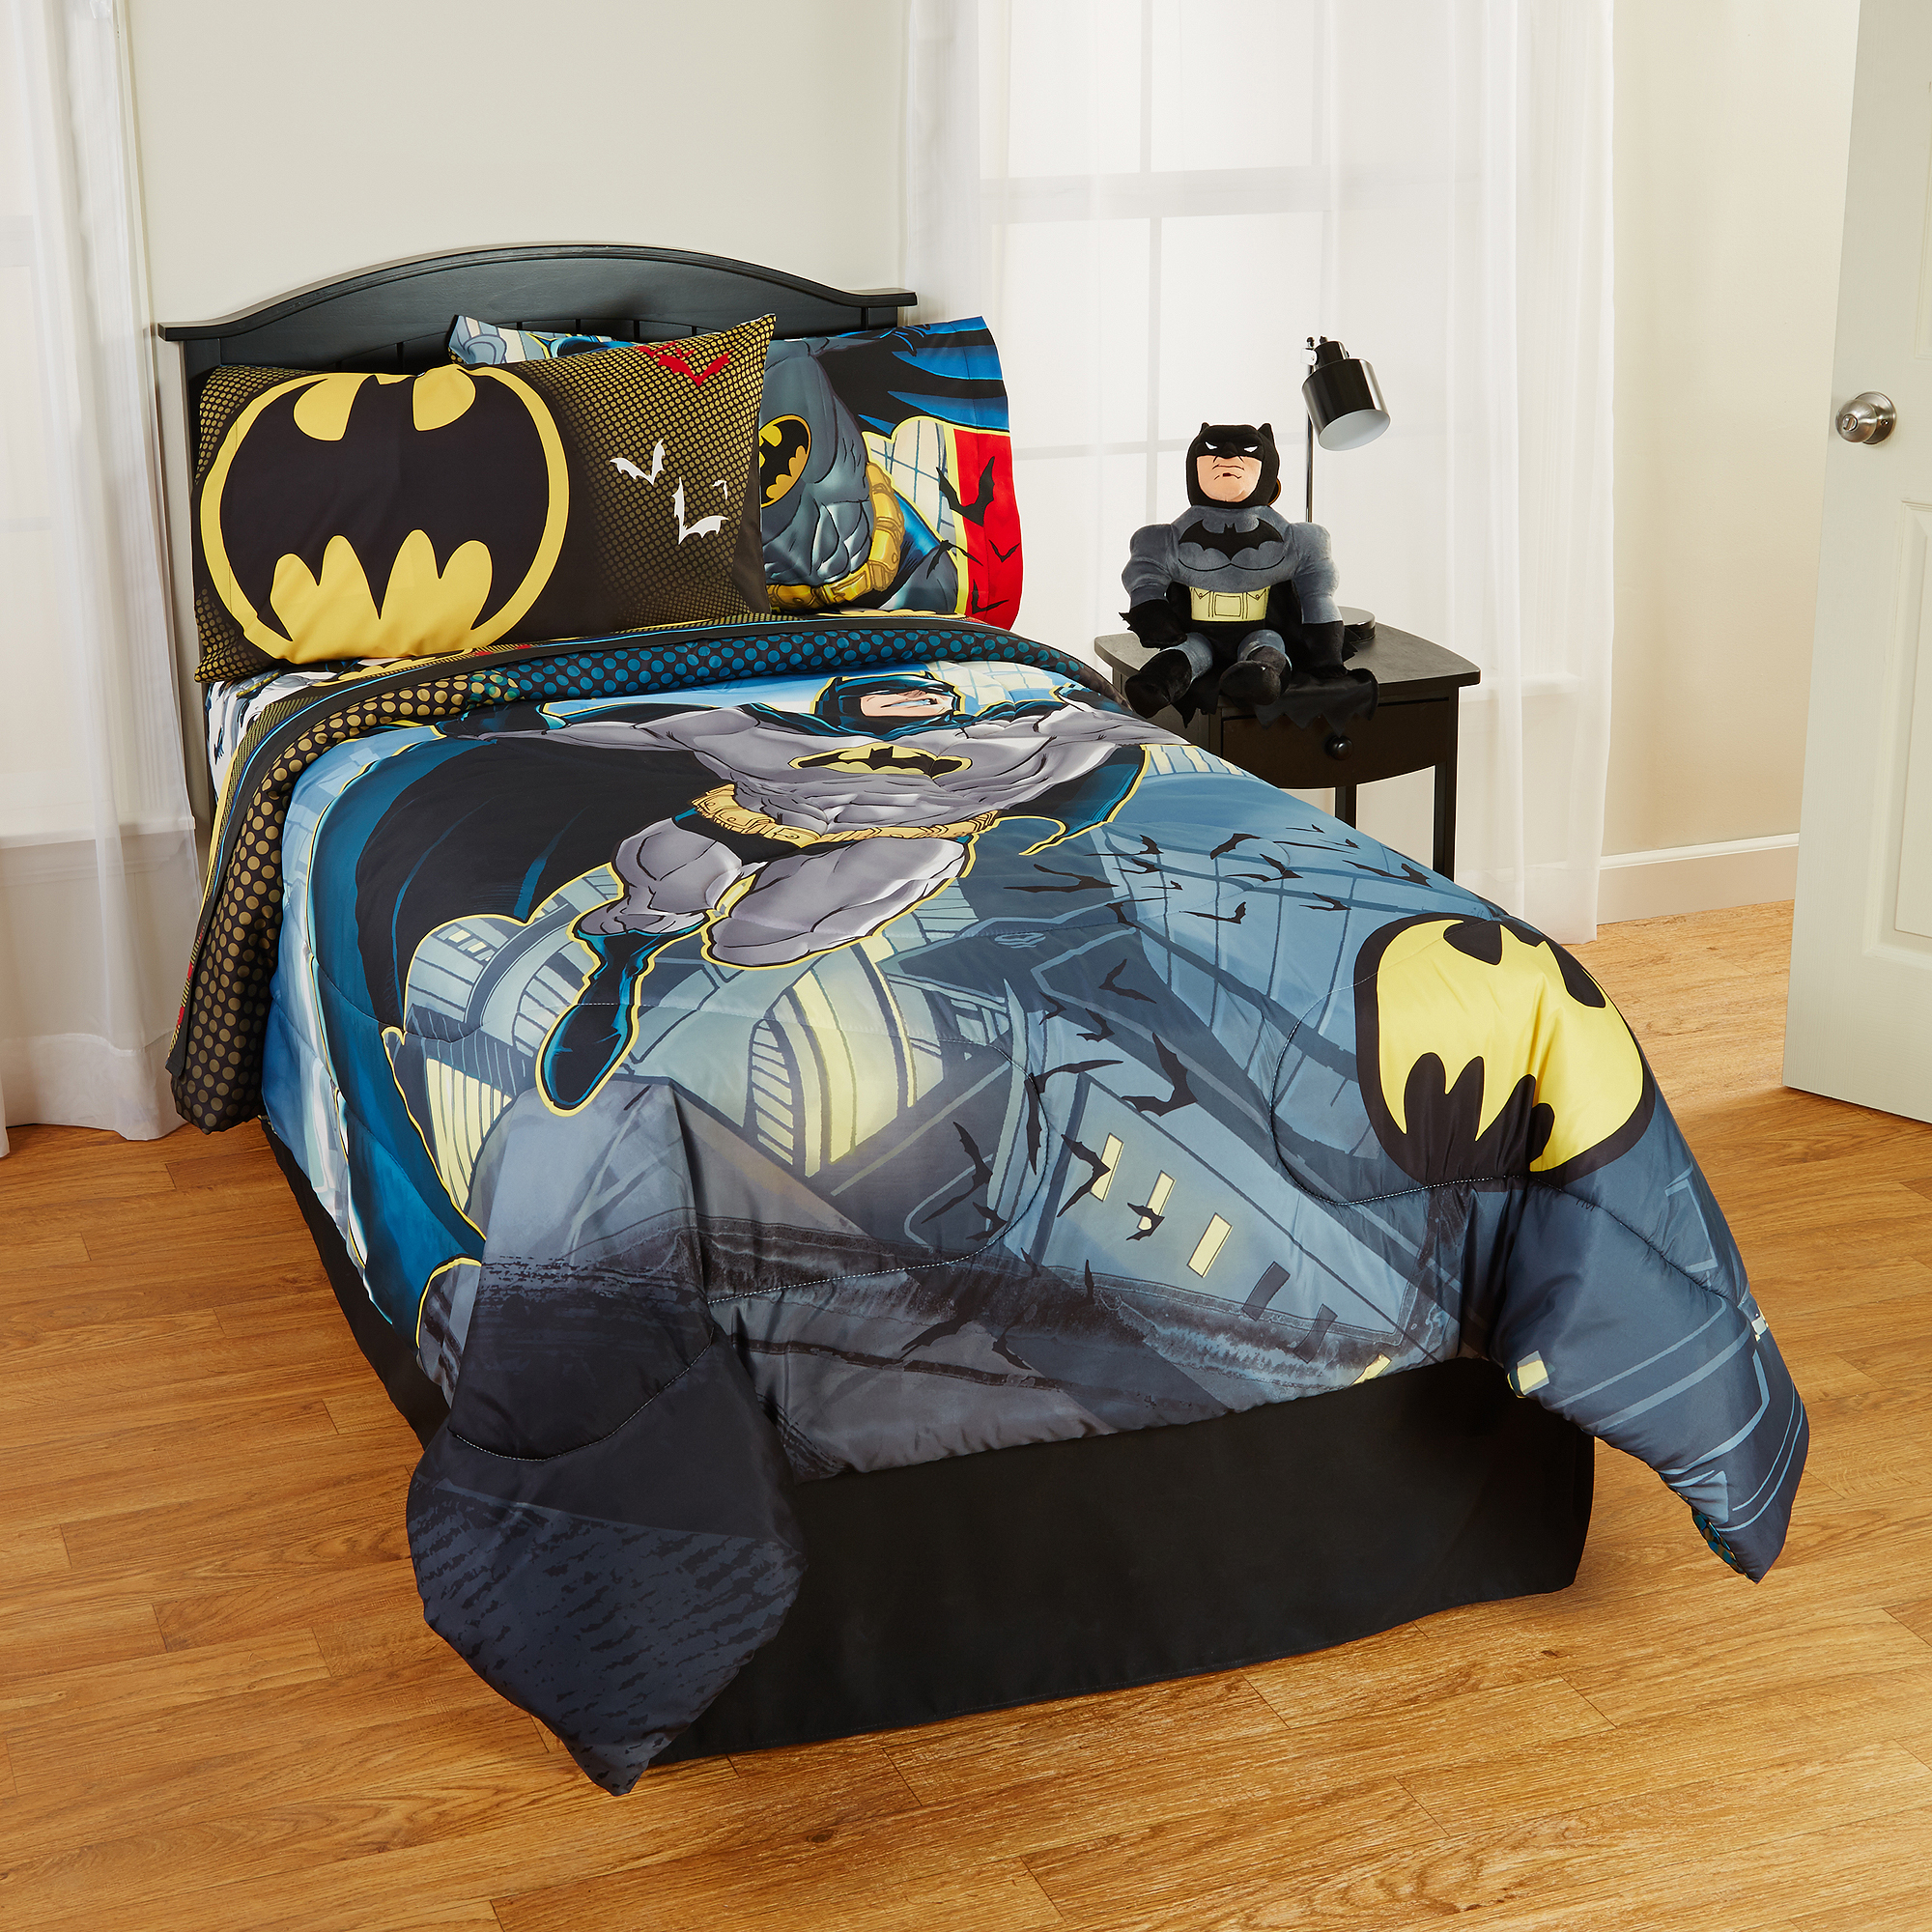 Simple Batman Bedroom Set Ideas